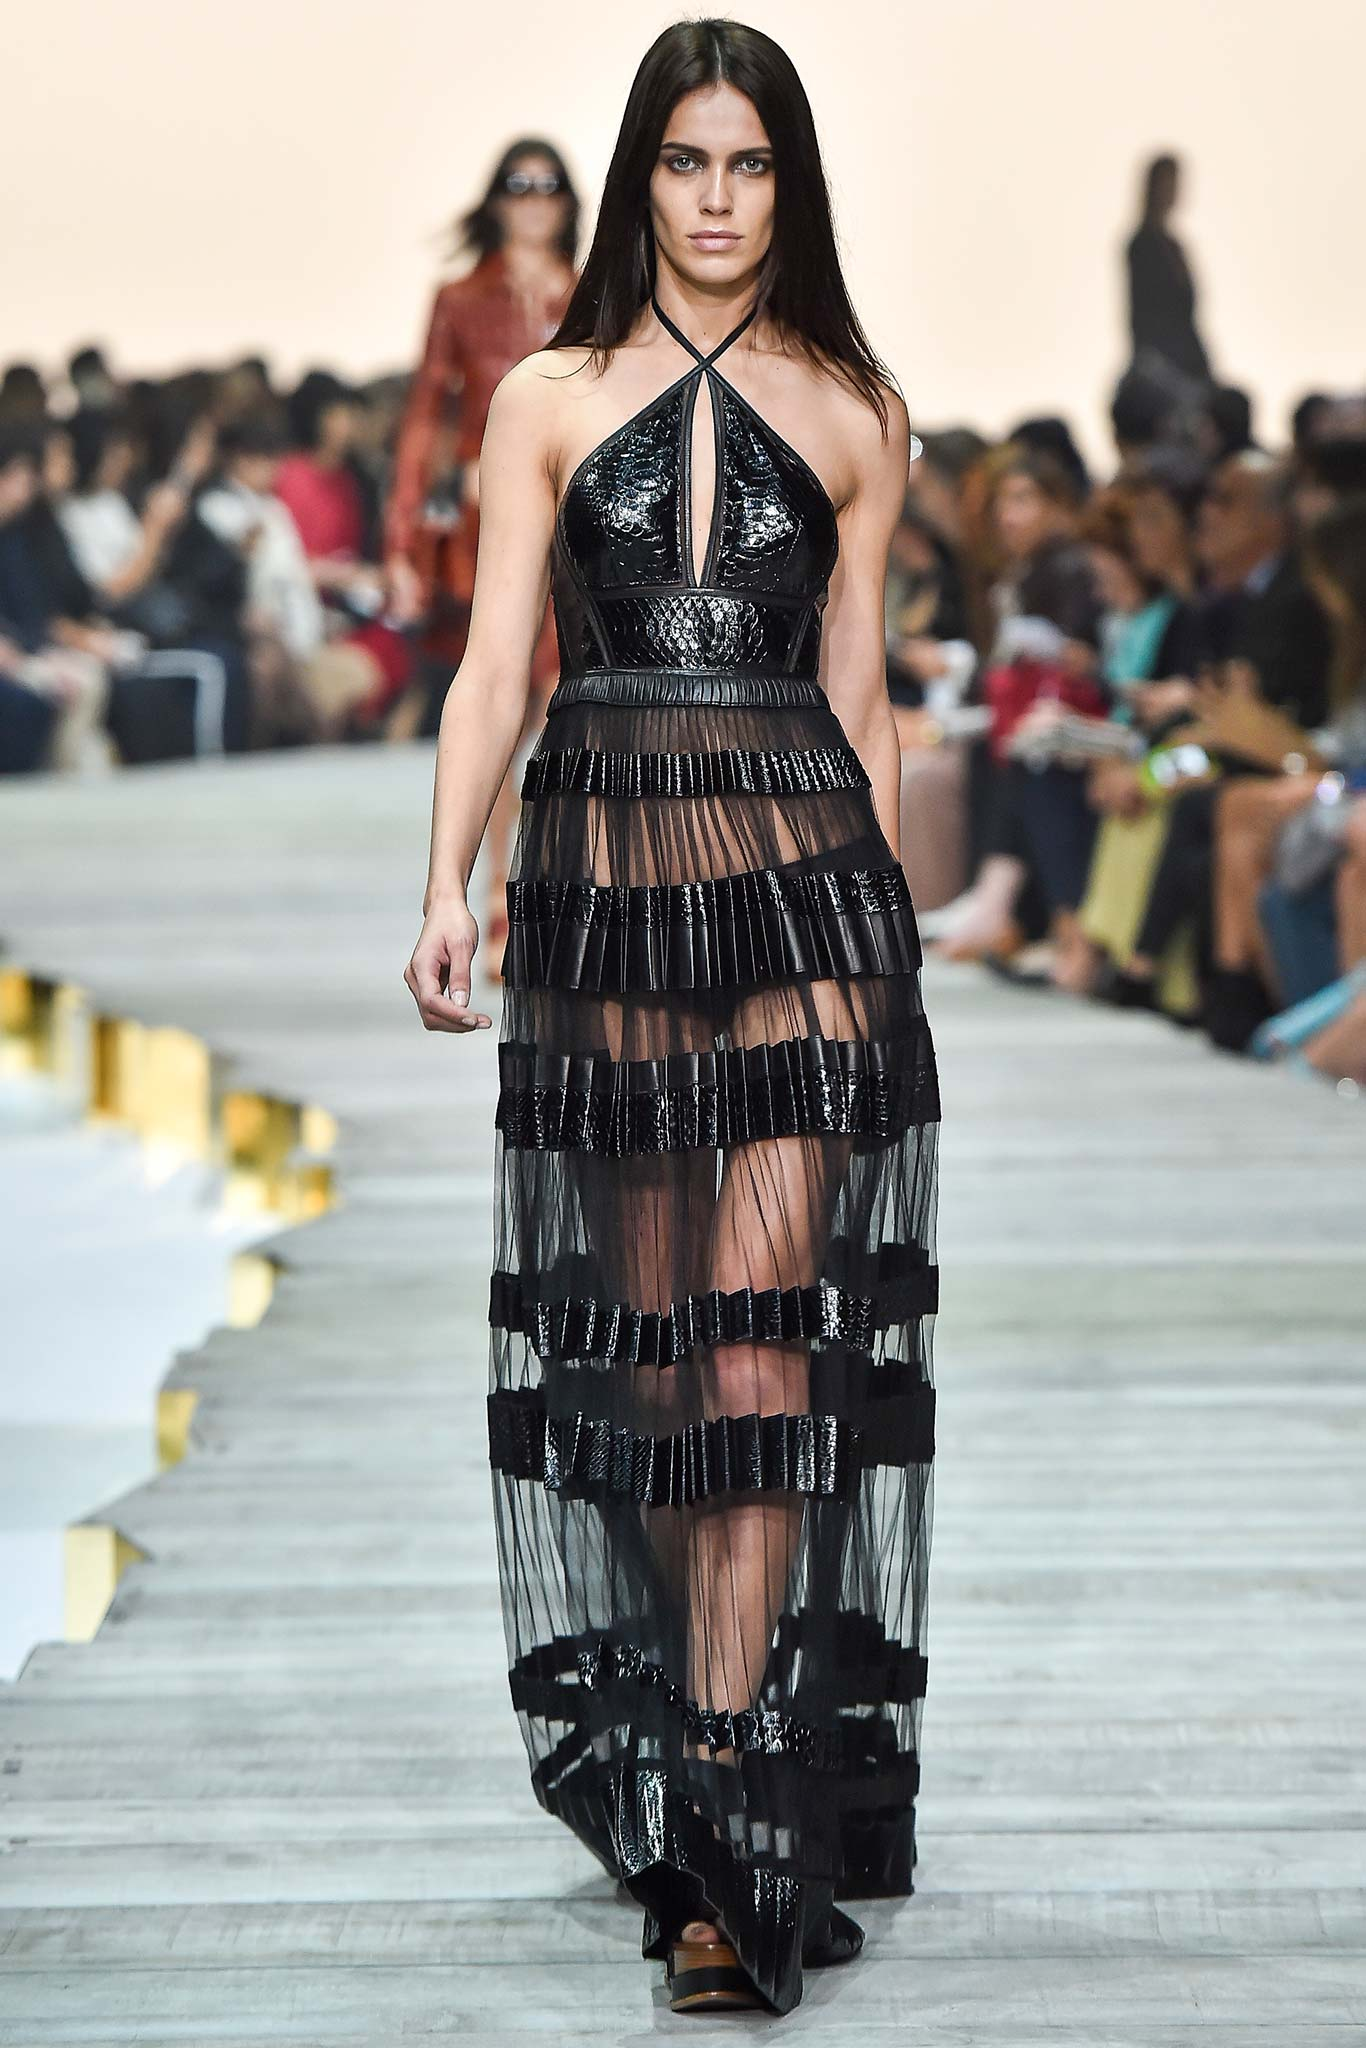 Roberto Cavalli Dresses 2015 it had not been Cavalli